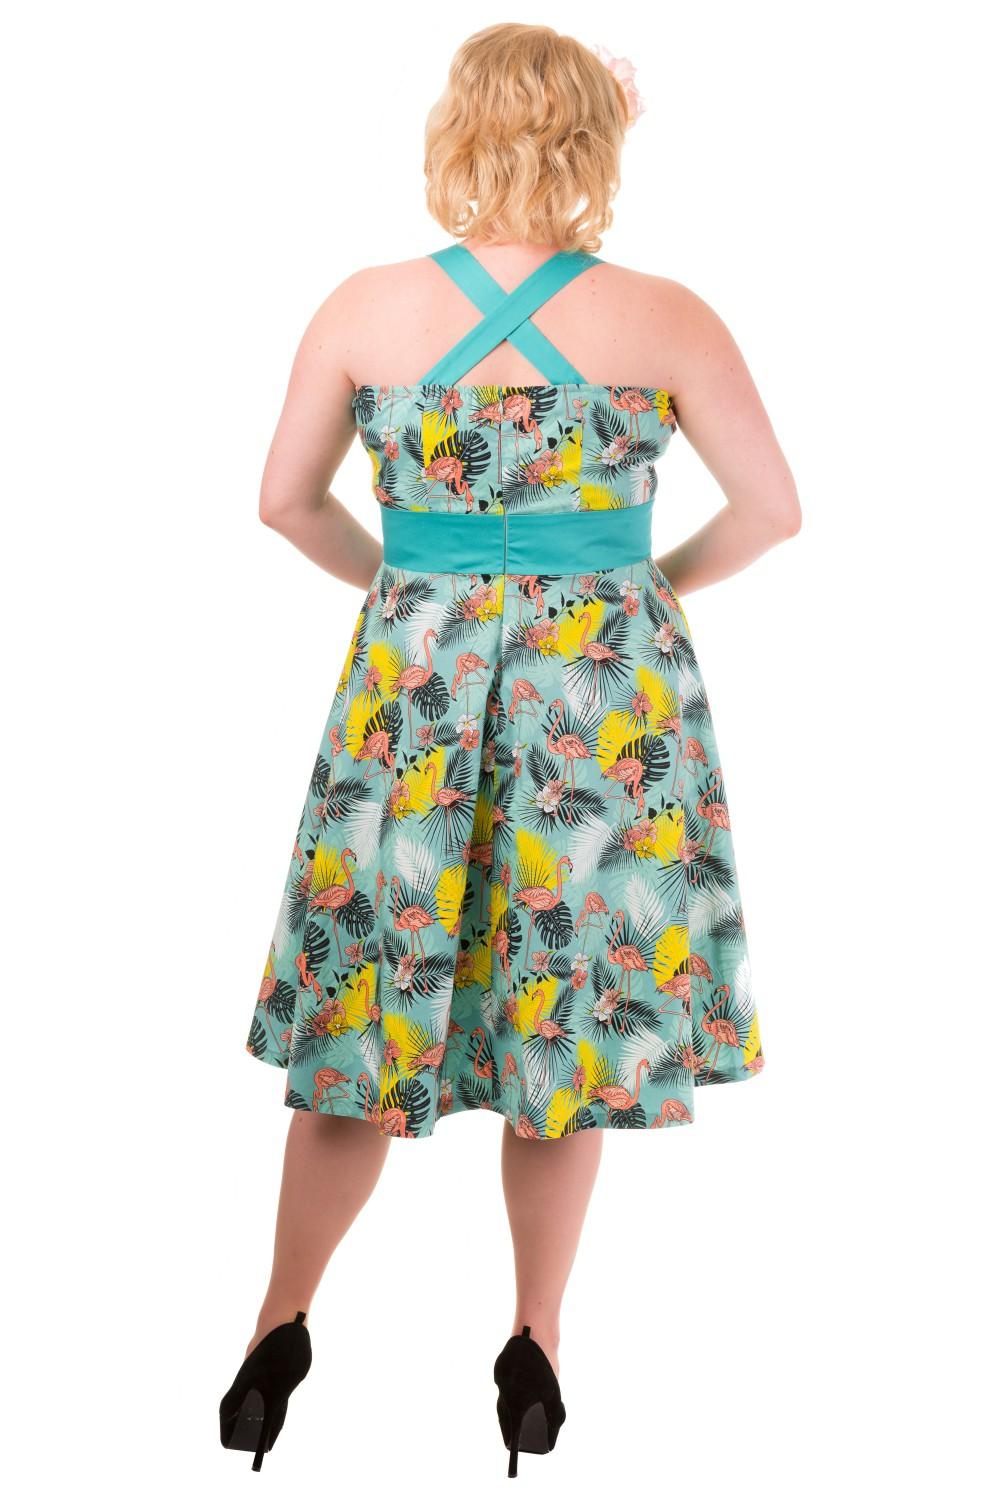 Banned Wanderlust Tropical Flamingo Rockabilly Dress